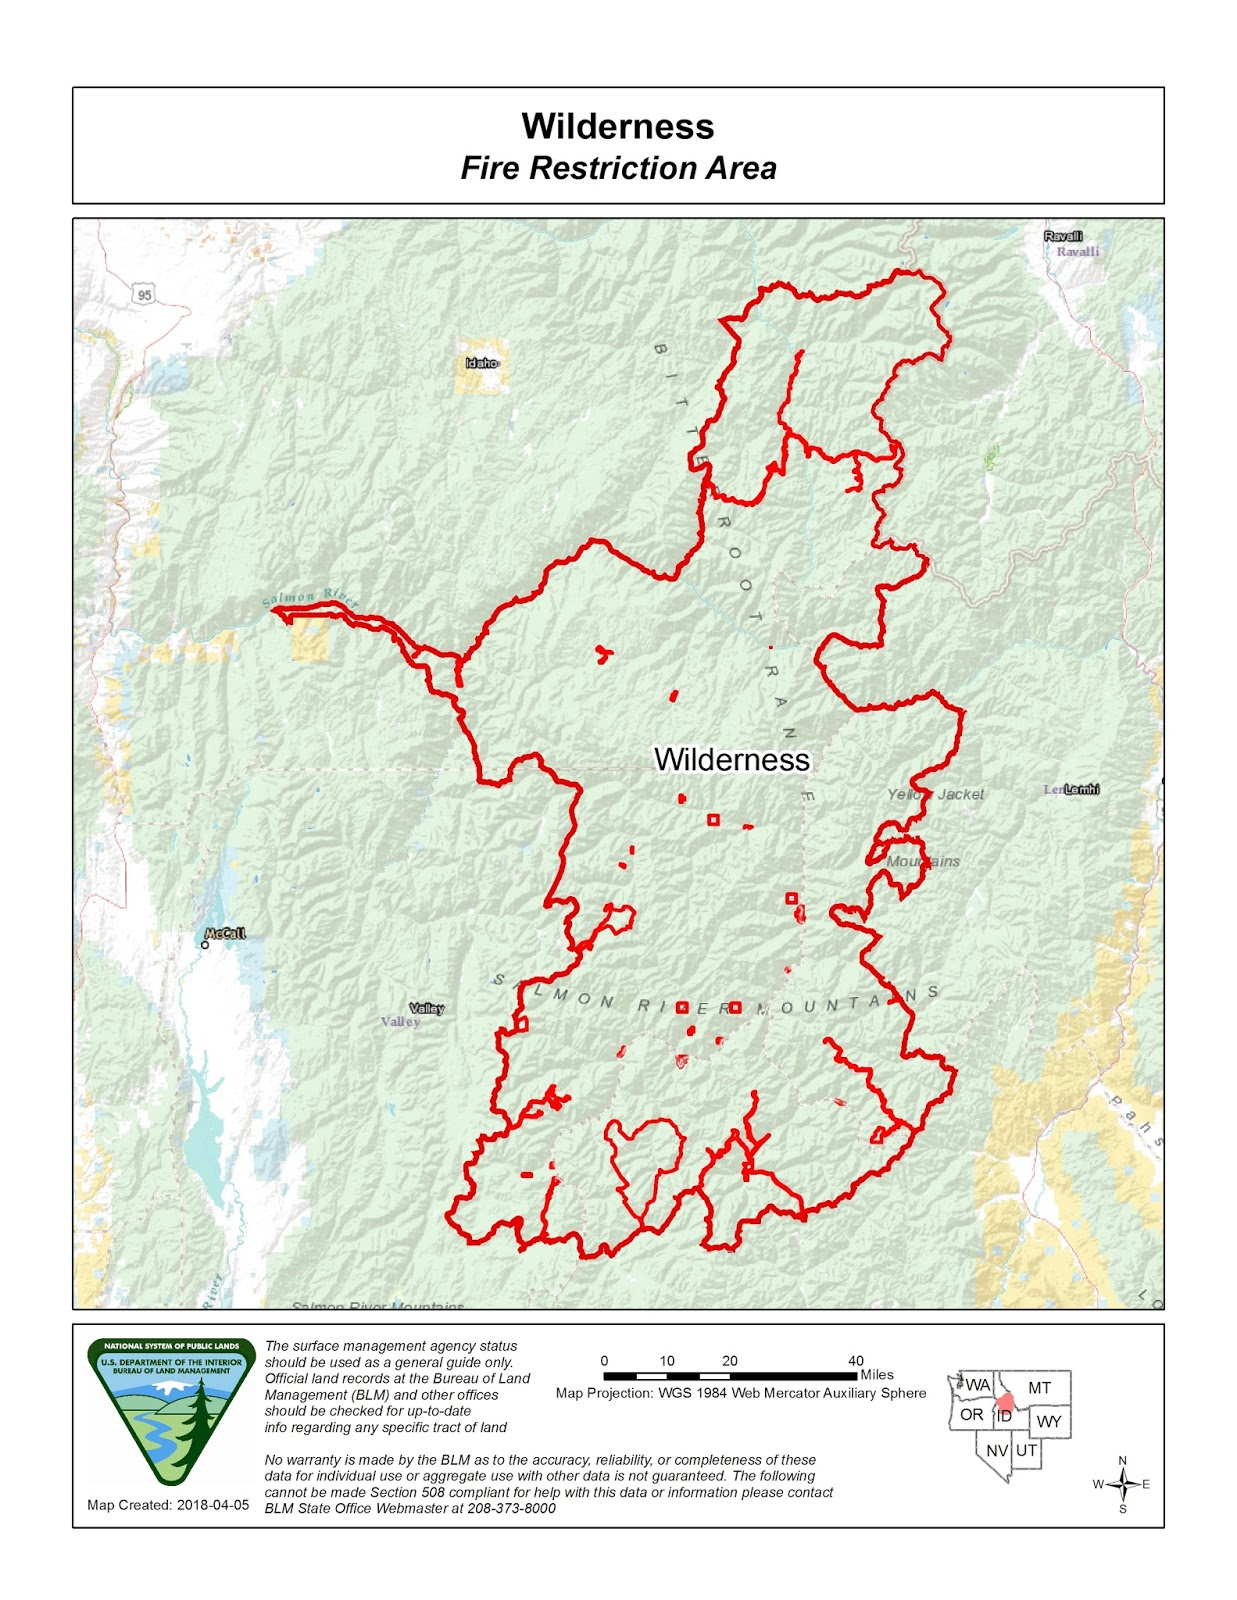 Blm Land Idaho Map.Idaho Fire Information Wilderness Fire Restrictions Area